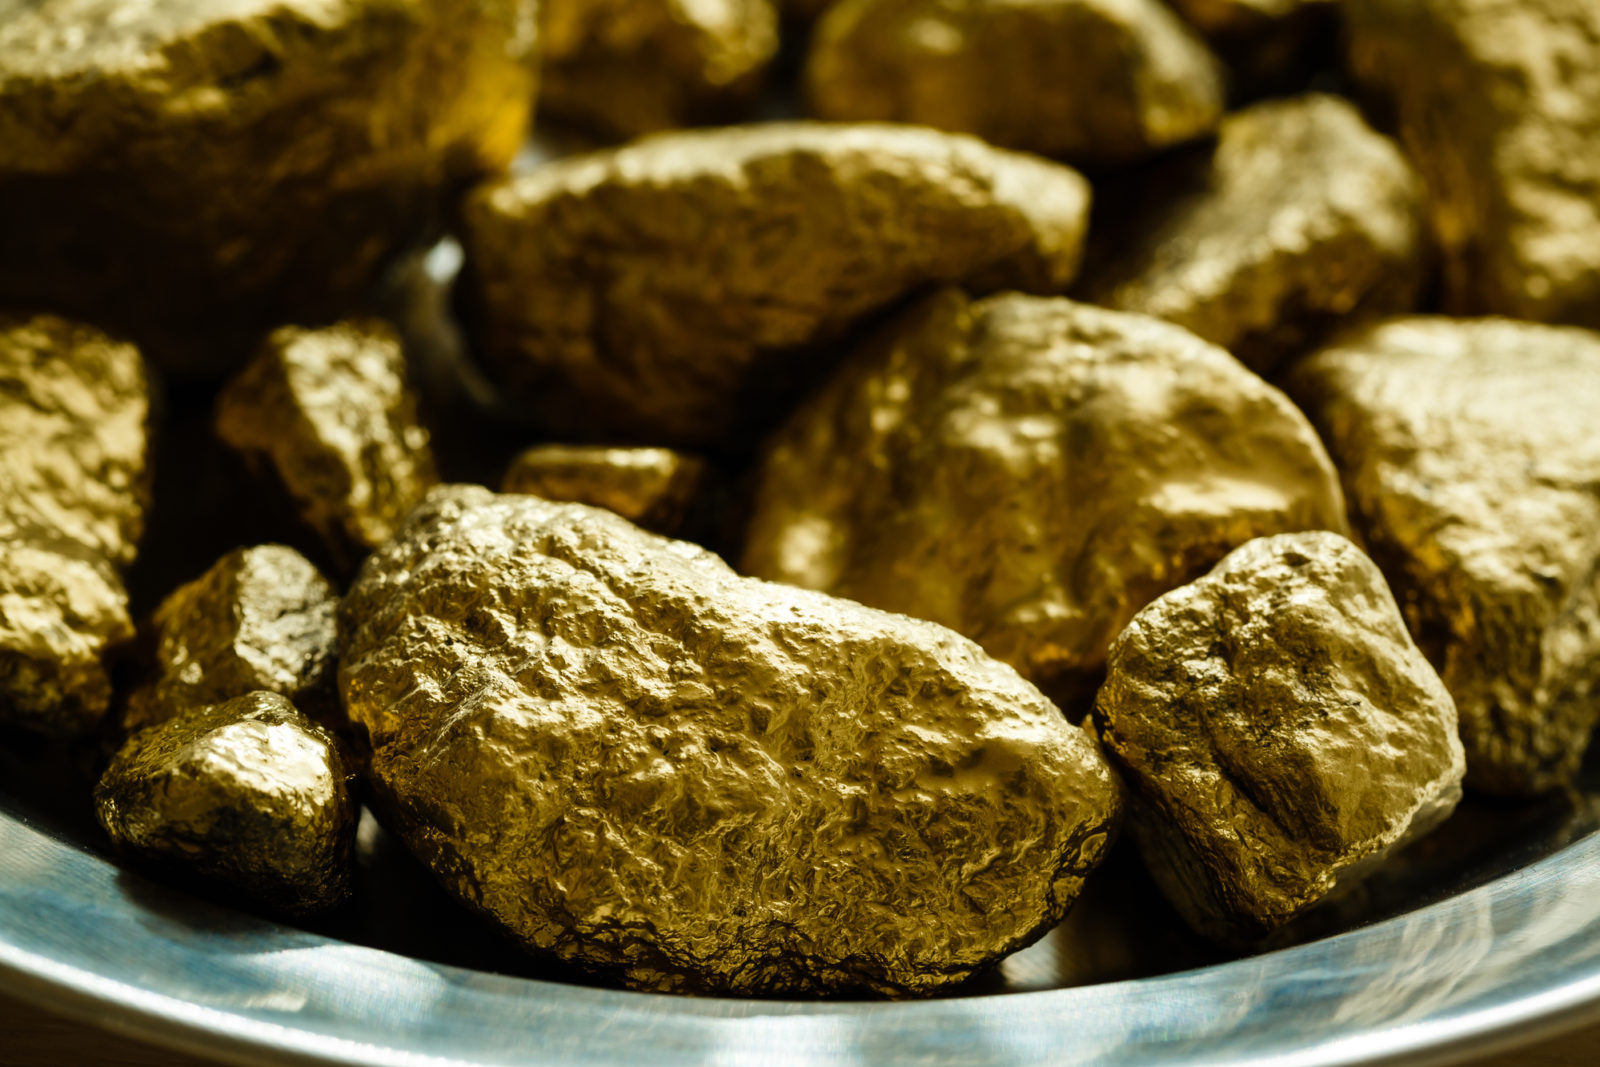 Gold Rush Gold nuggets